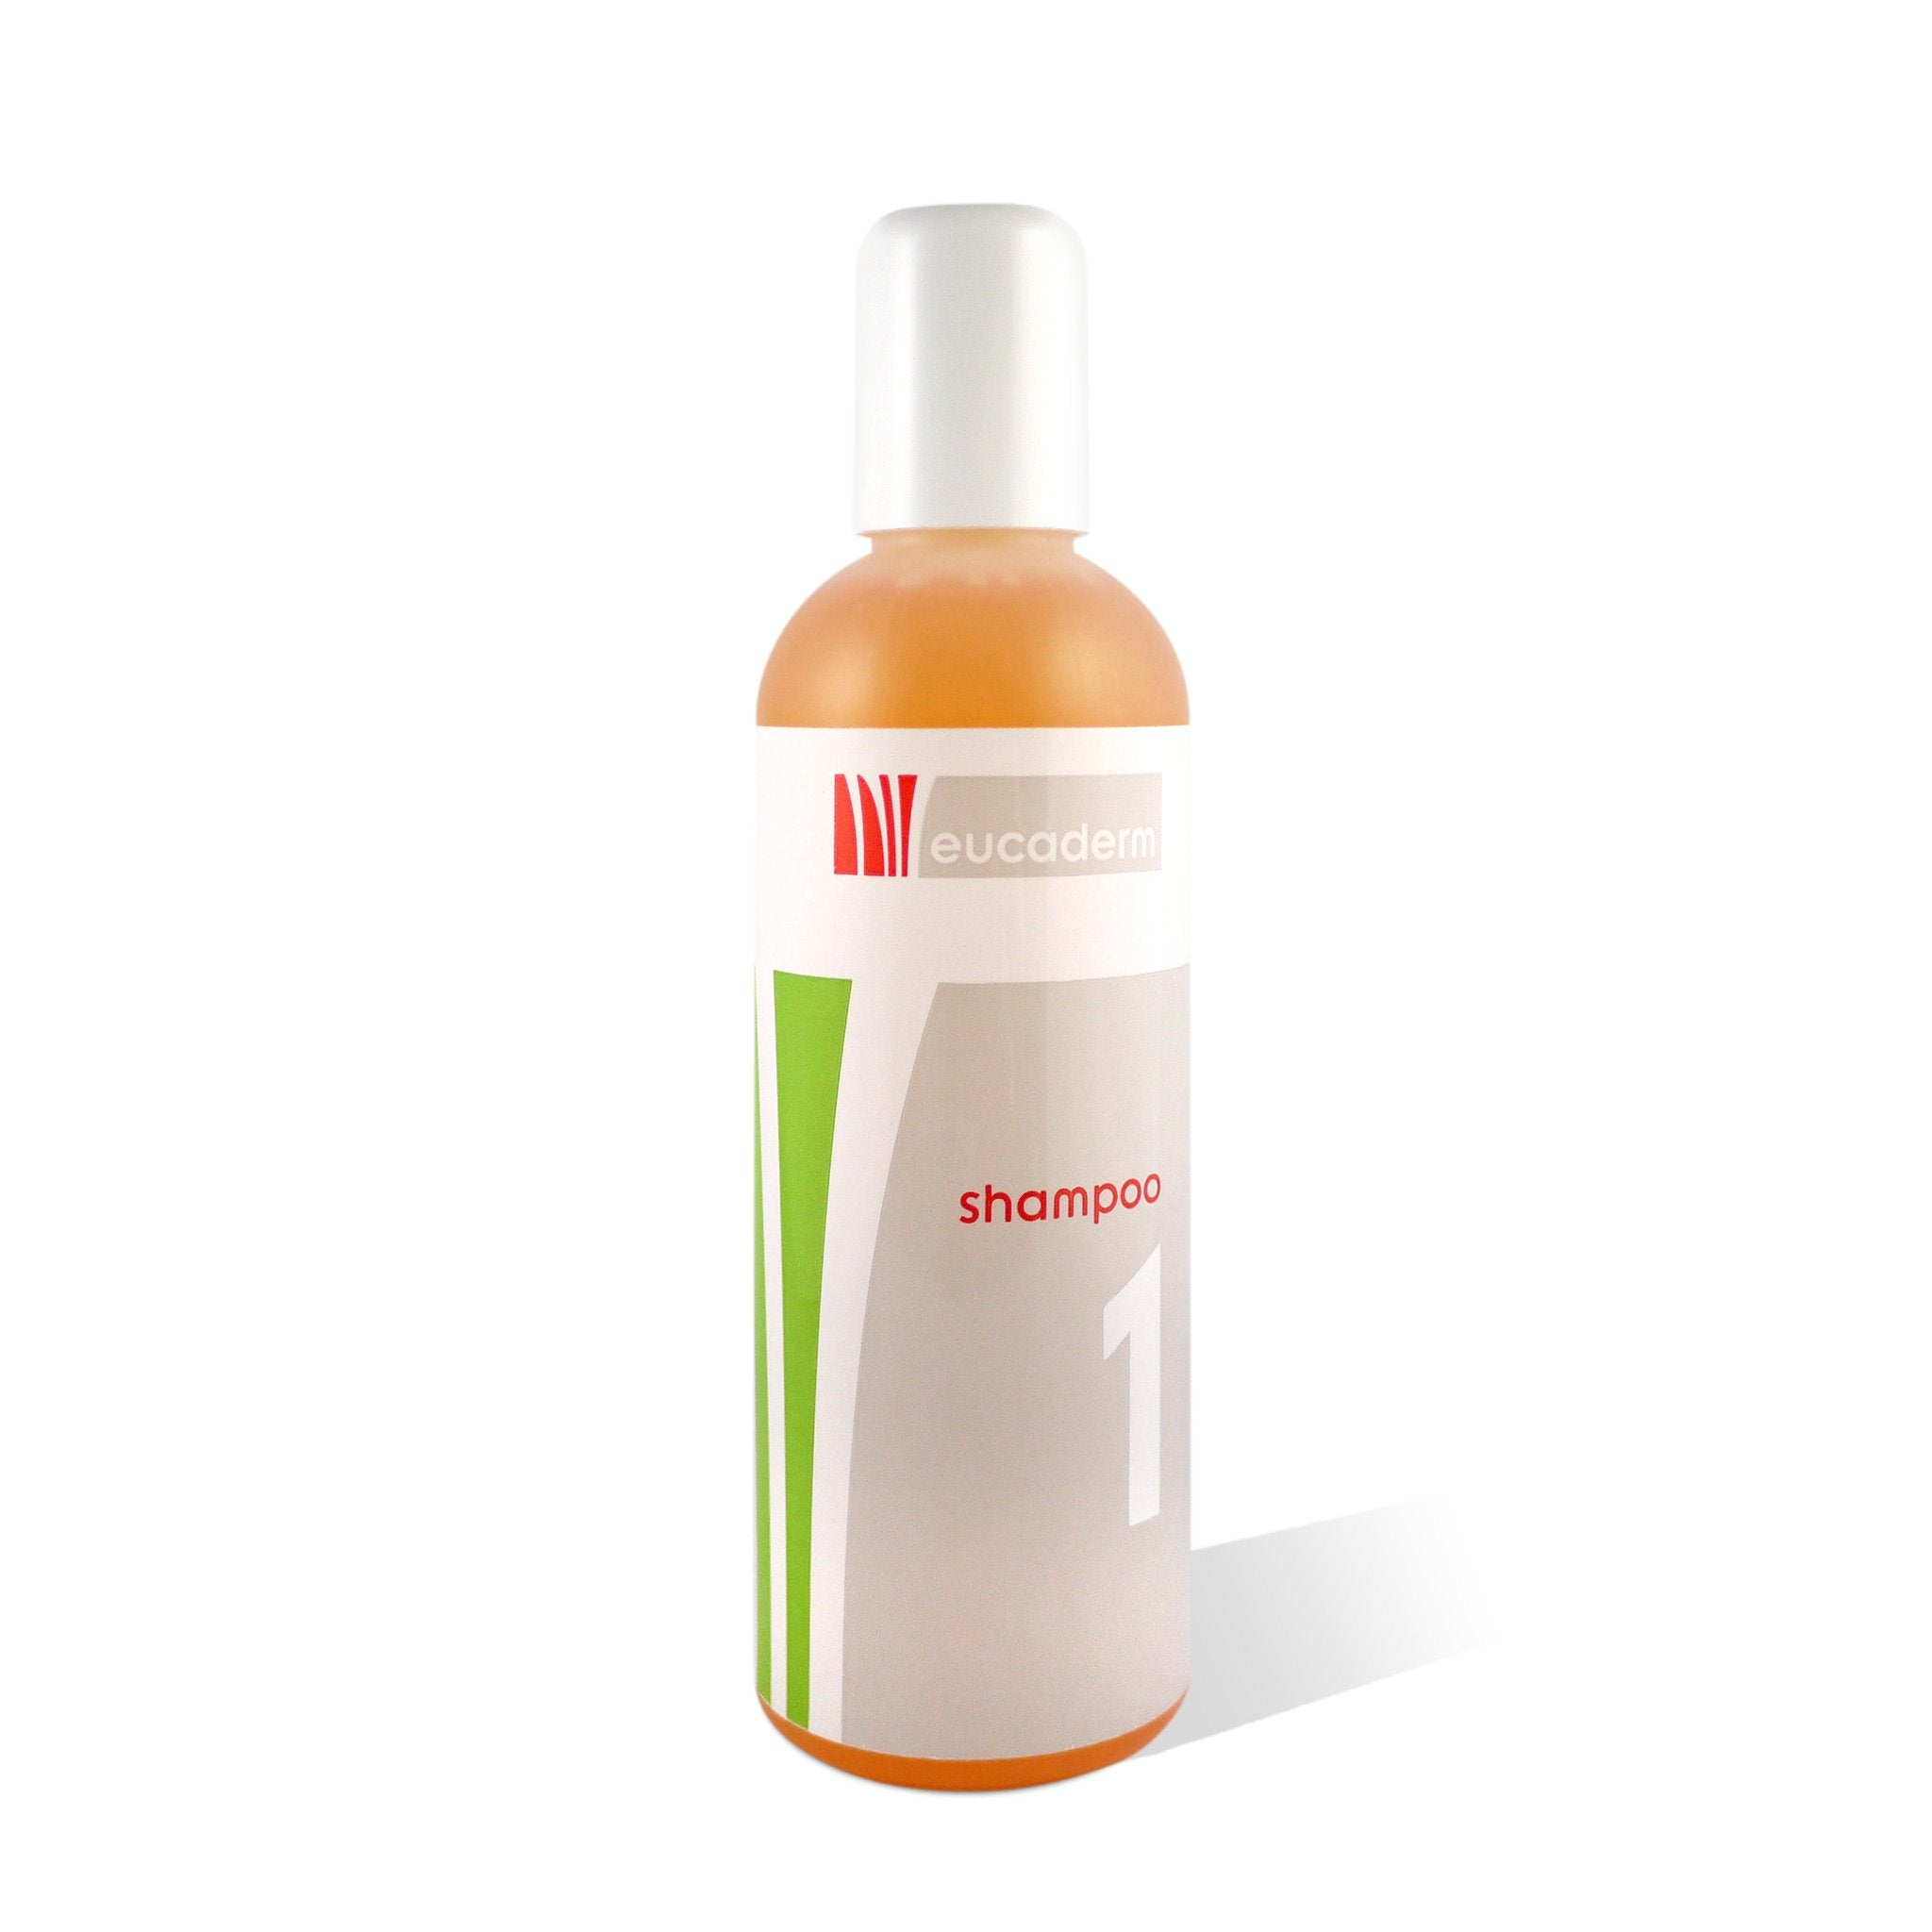 Eucaderm Shampoo No 1 (200ml)